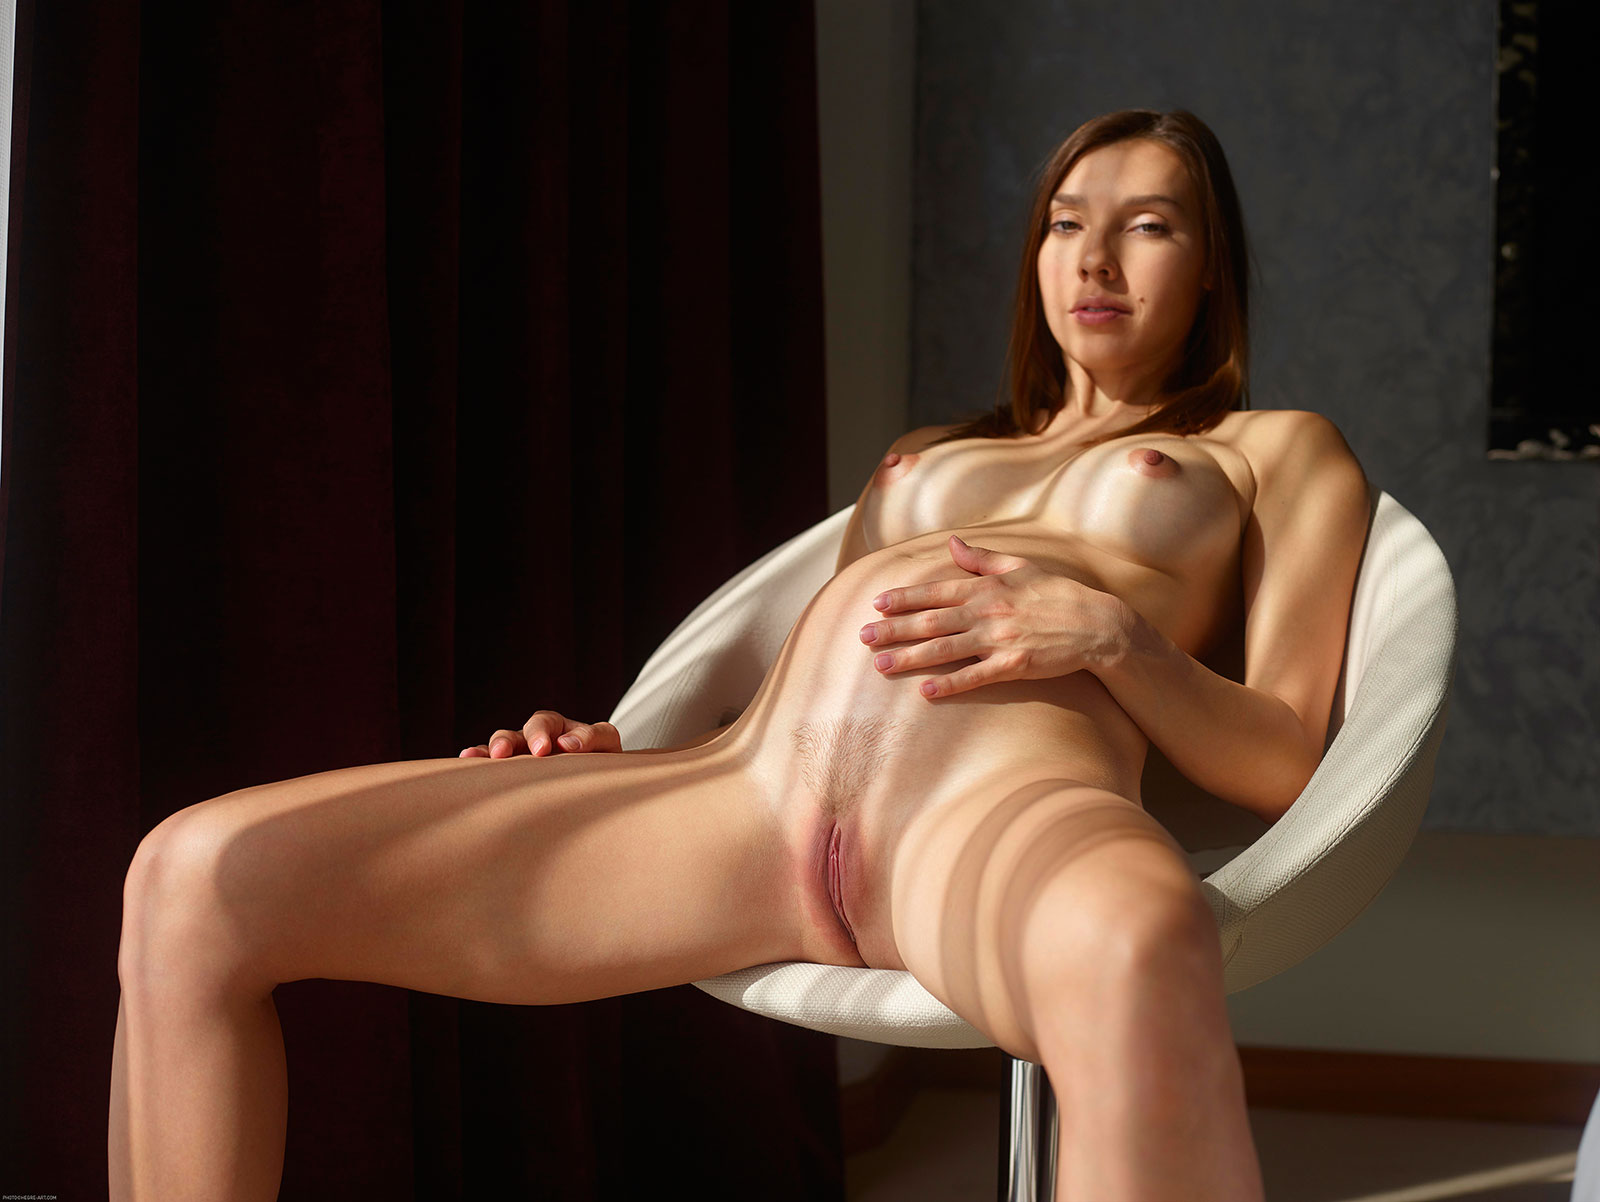 cuckolds videos  XVIDEOSCOM